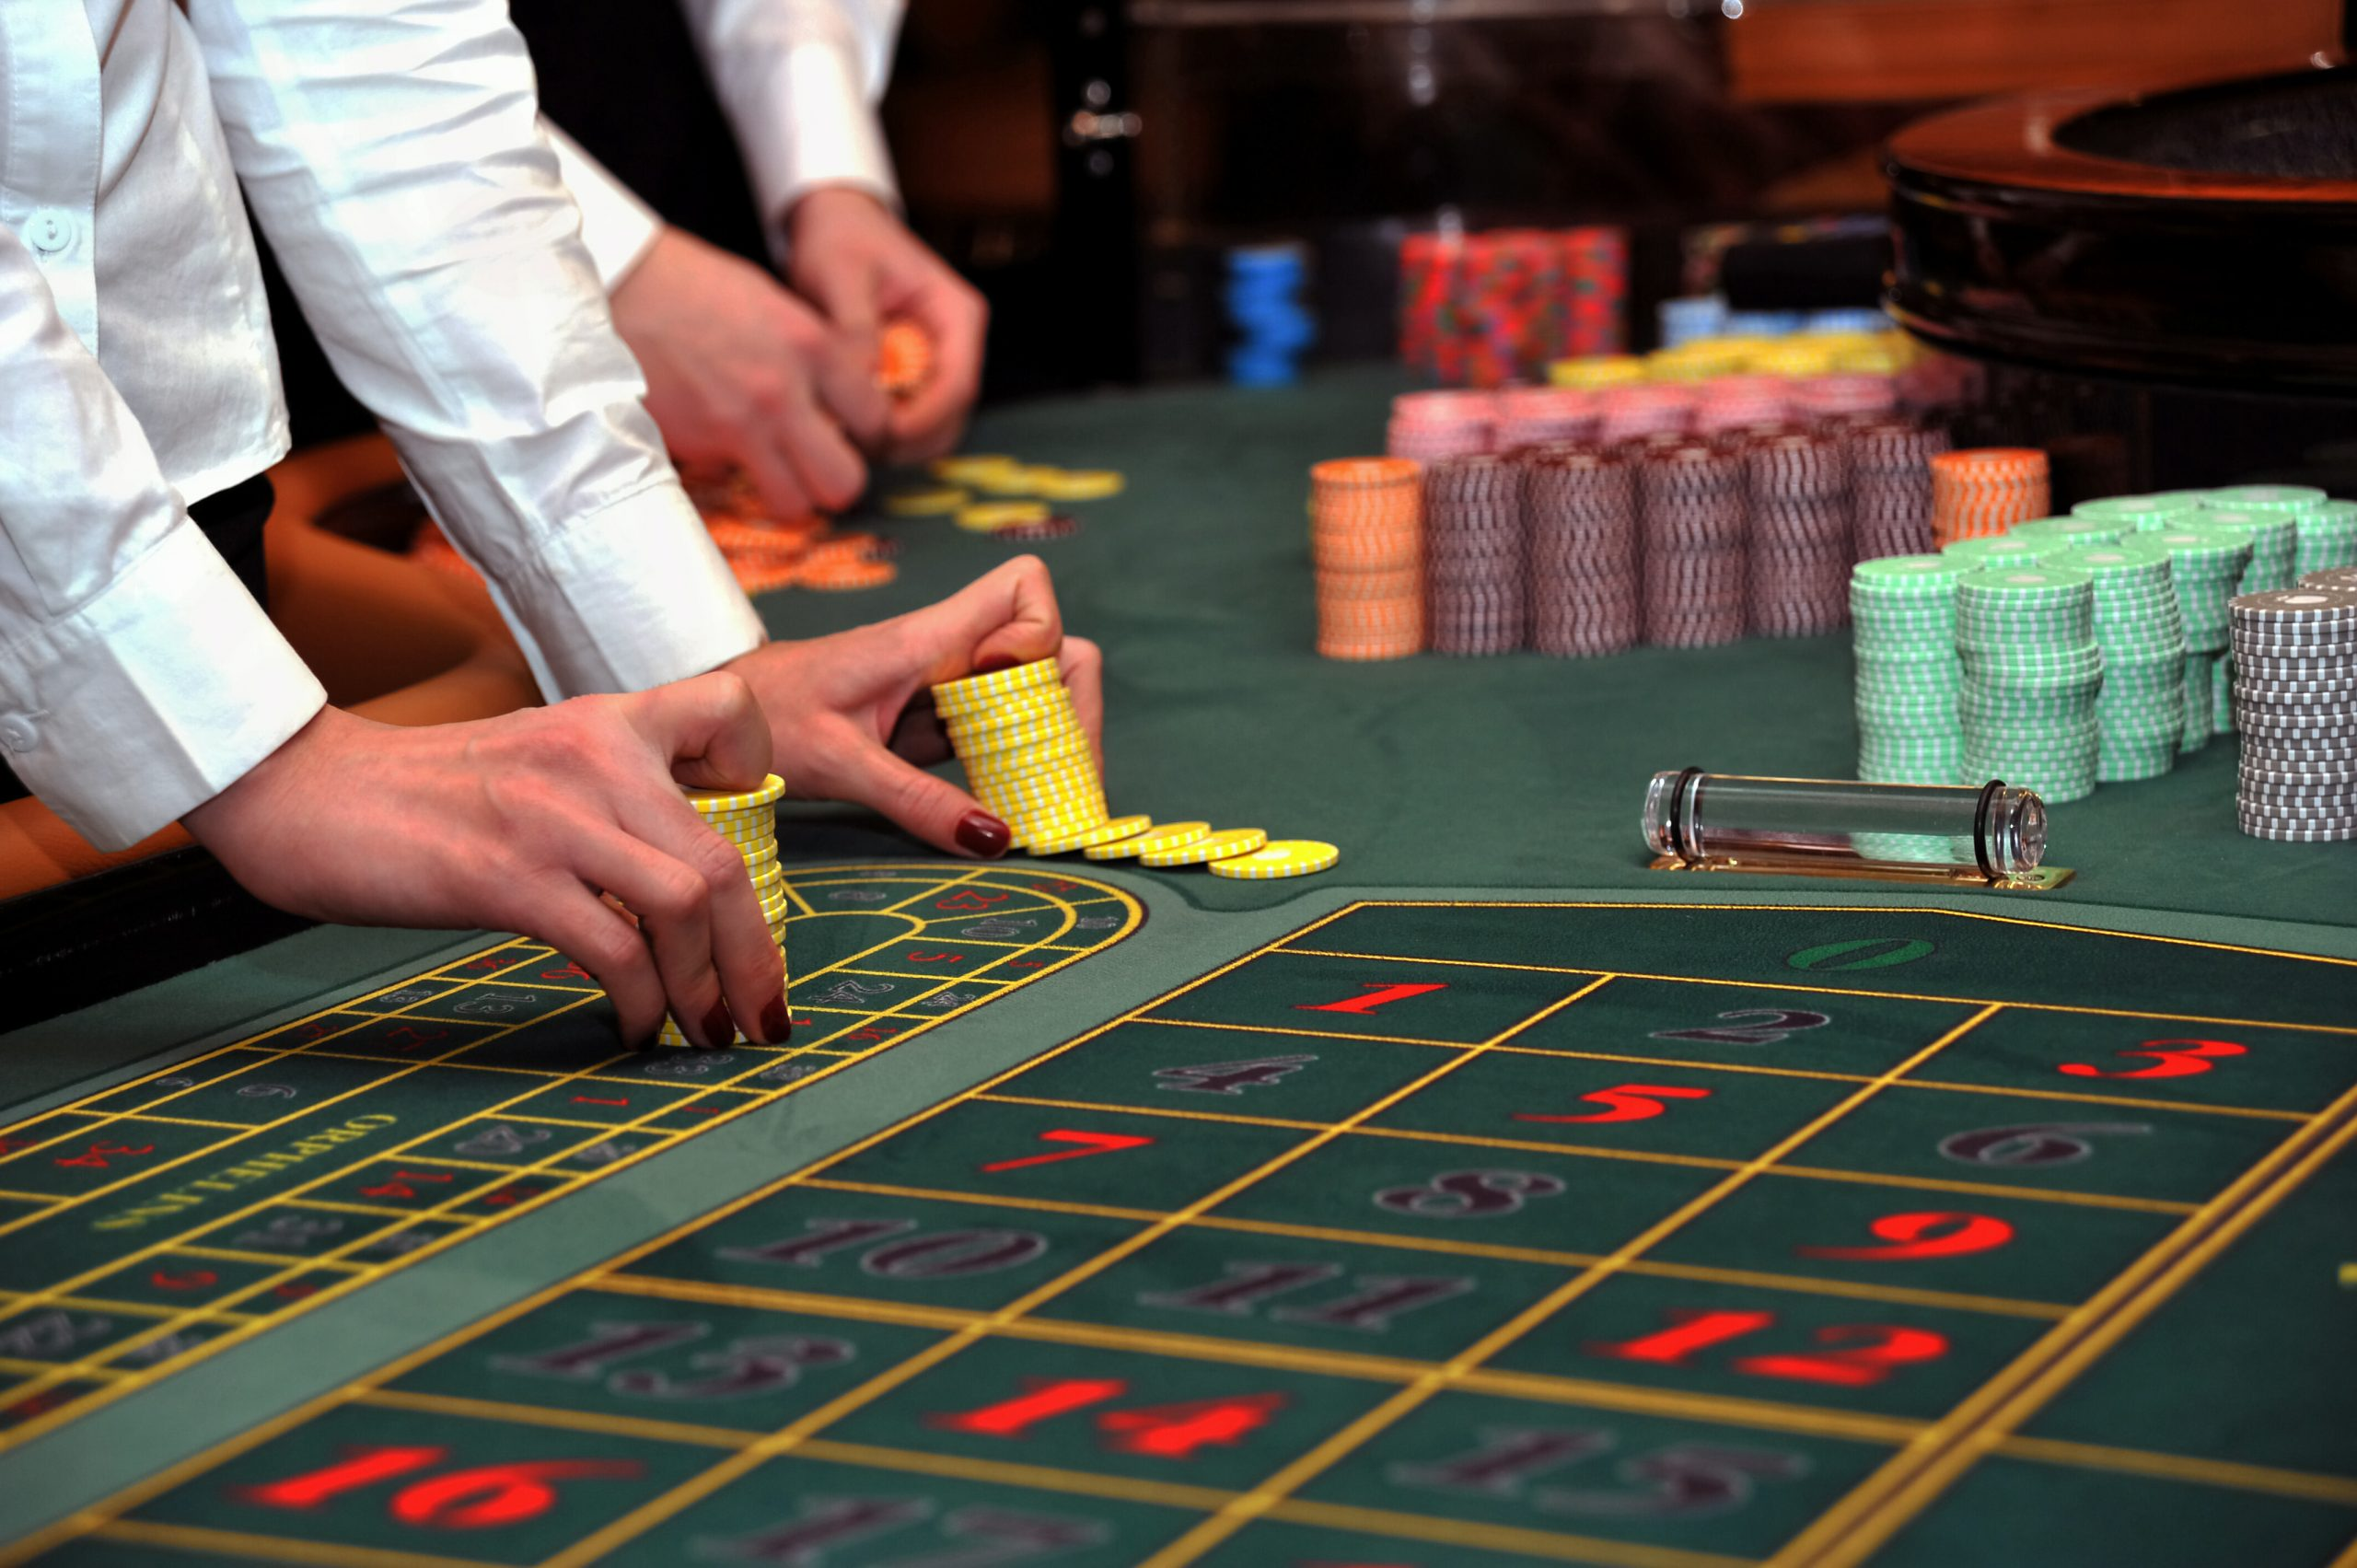 More reasons to gamble online rather than in a ground based casino